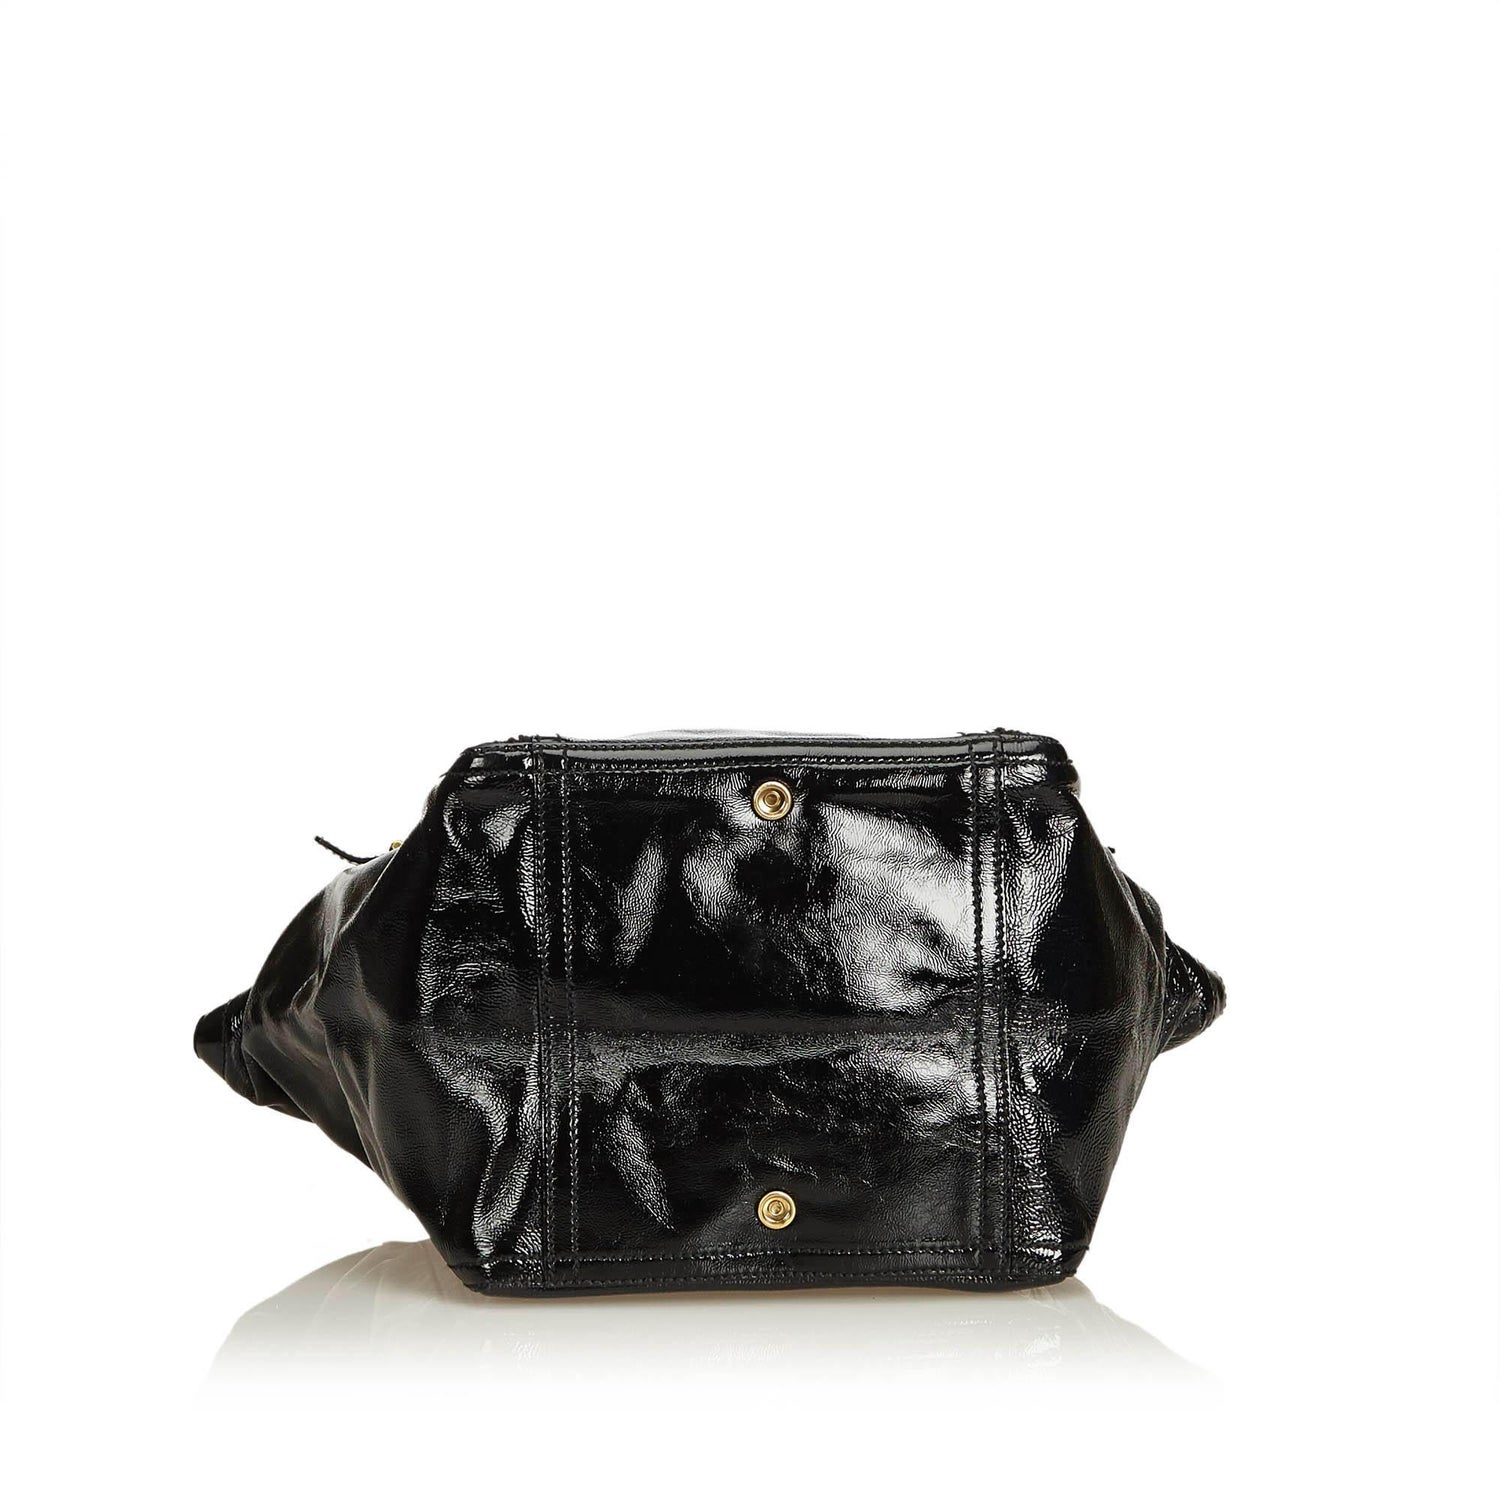 ecdf7be9d6 YSL Black Patent Leather Downtown Tote at 1stdibs